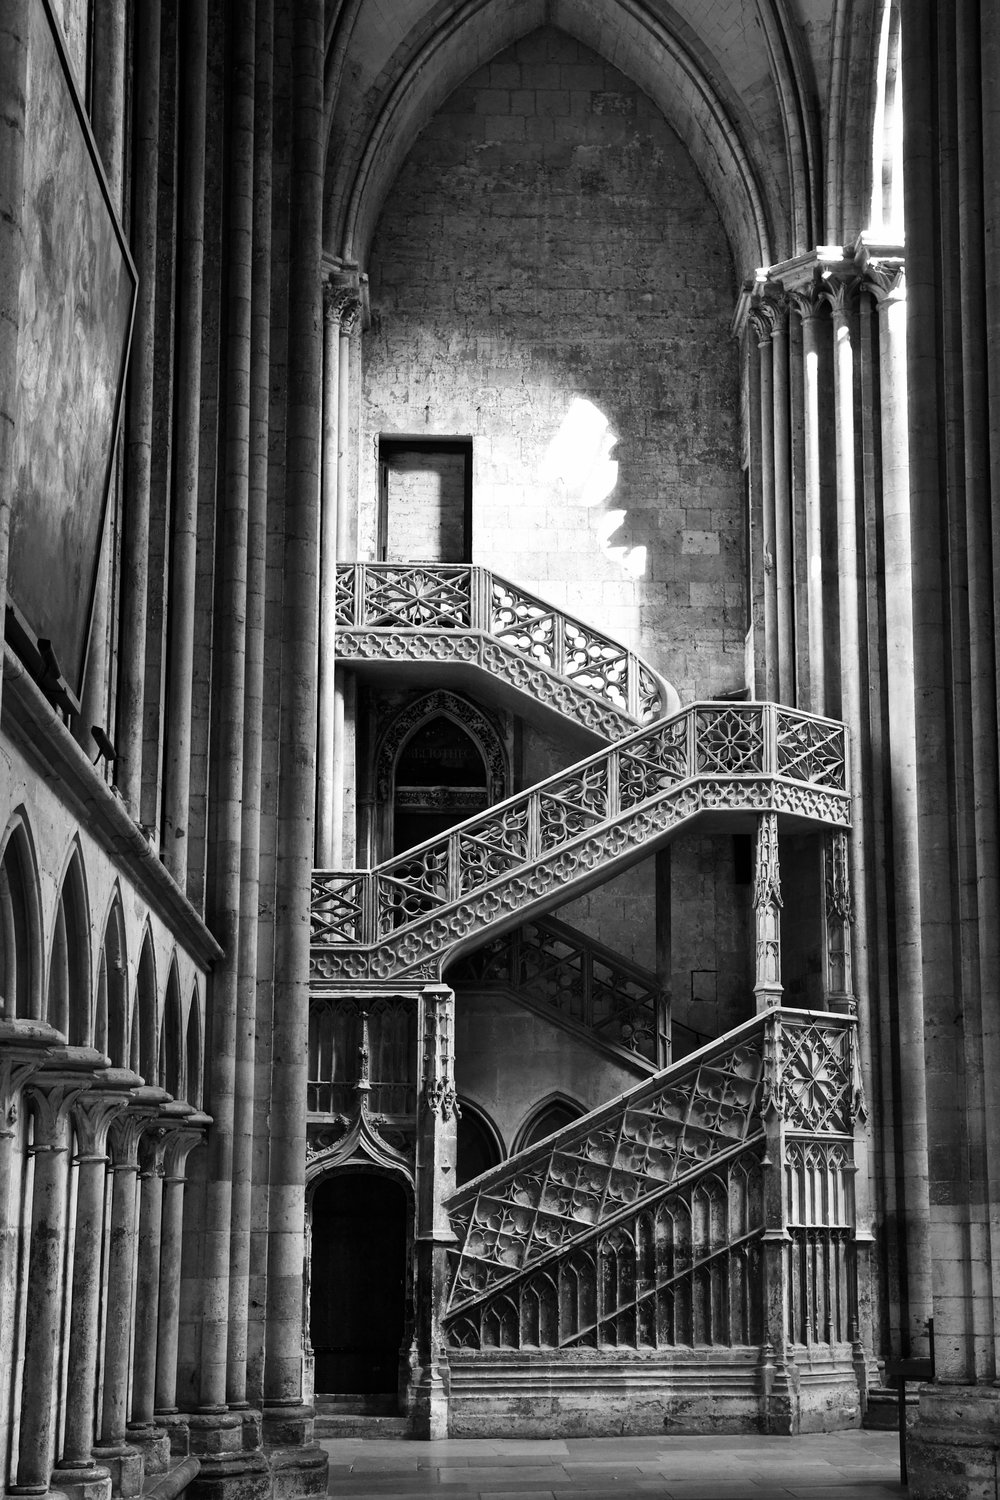 The Booksellers' Stairway - Rouen Cathedral